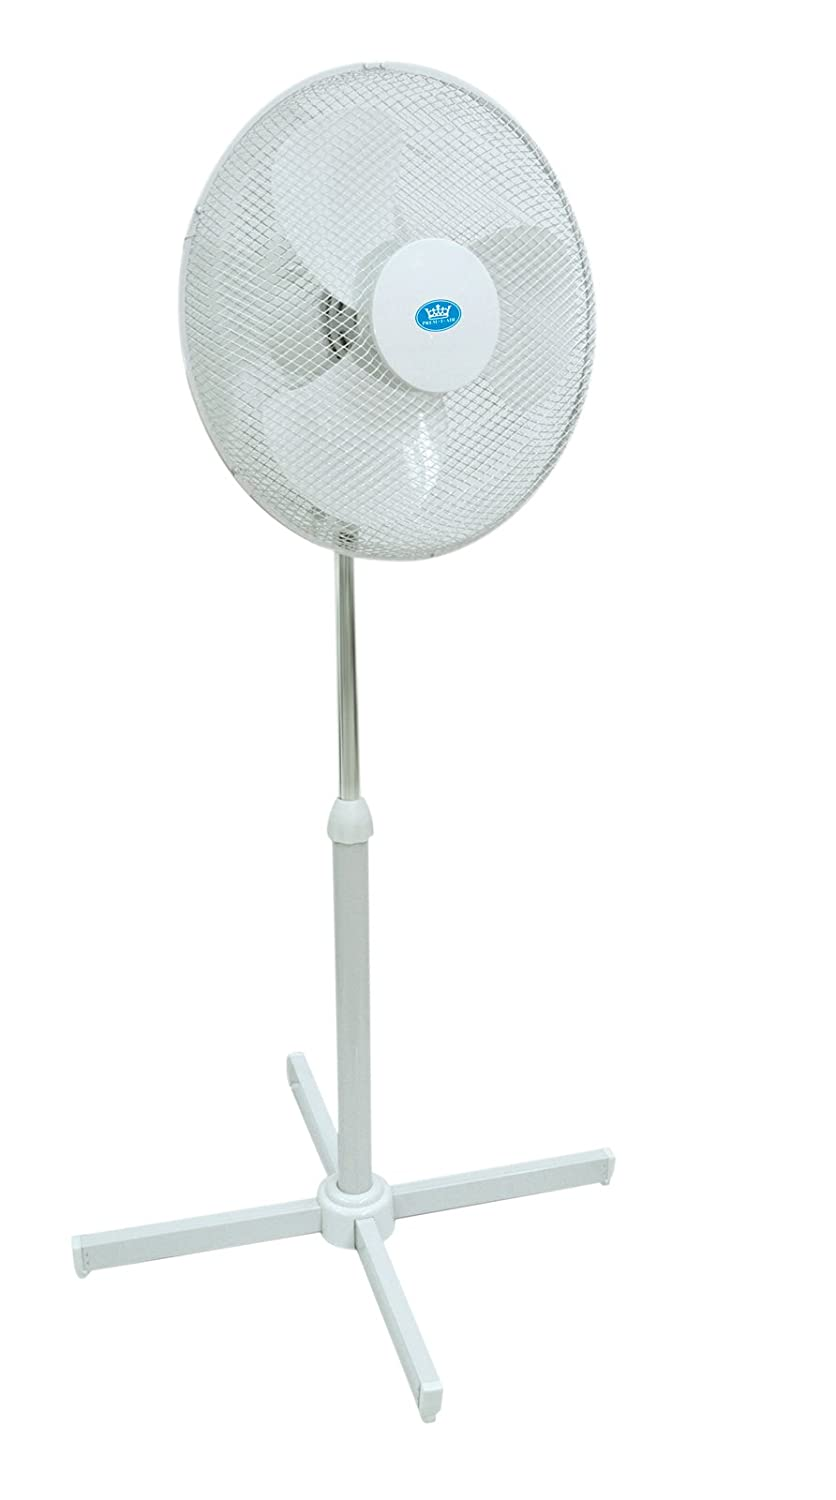 2x White 16 inch Oscillating Pedestal (Stand) Fan